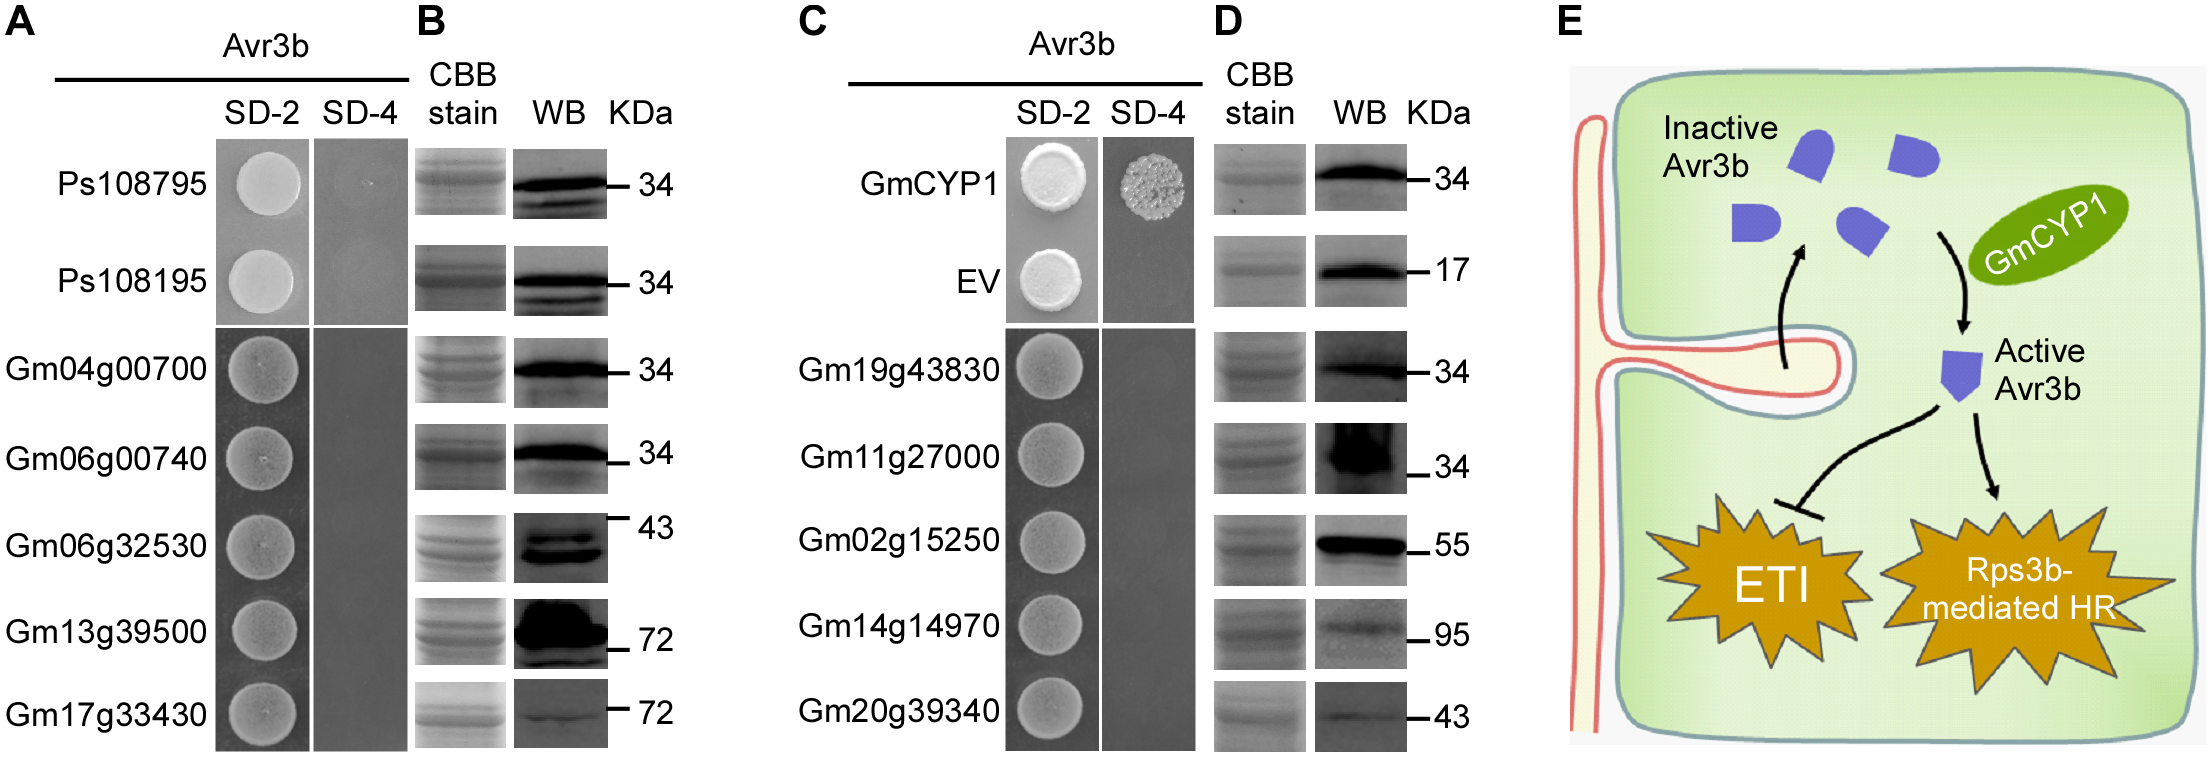 Avr3b specifically interacts with GmCYP1 in soybean.